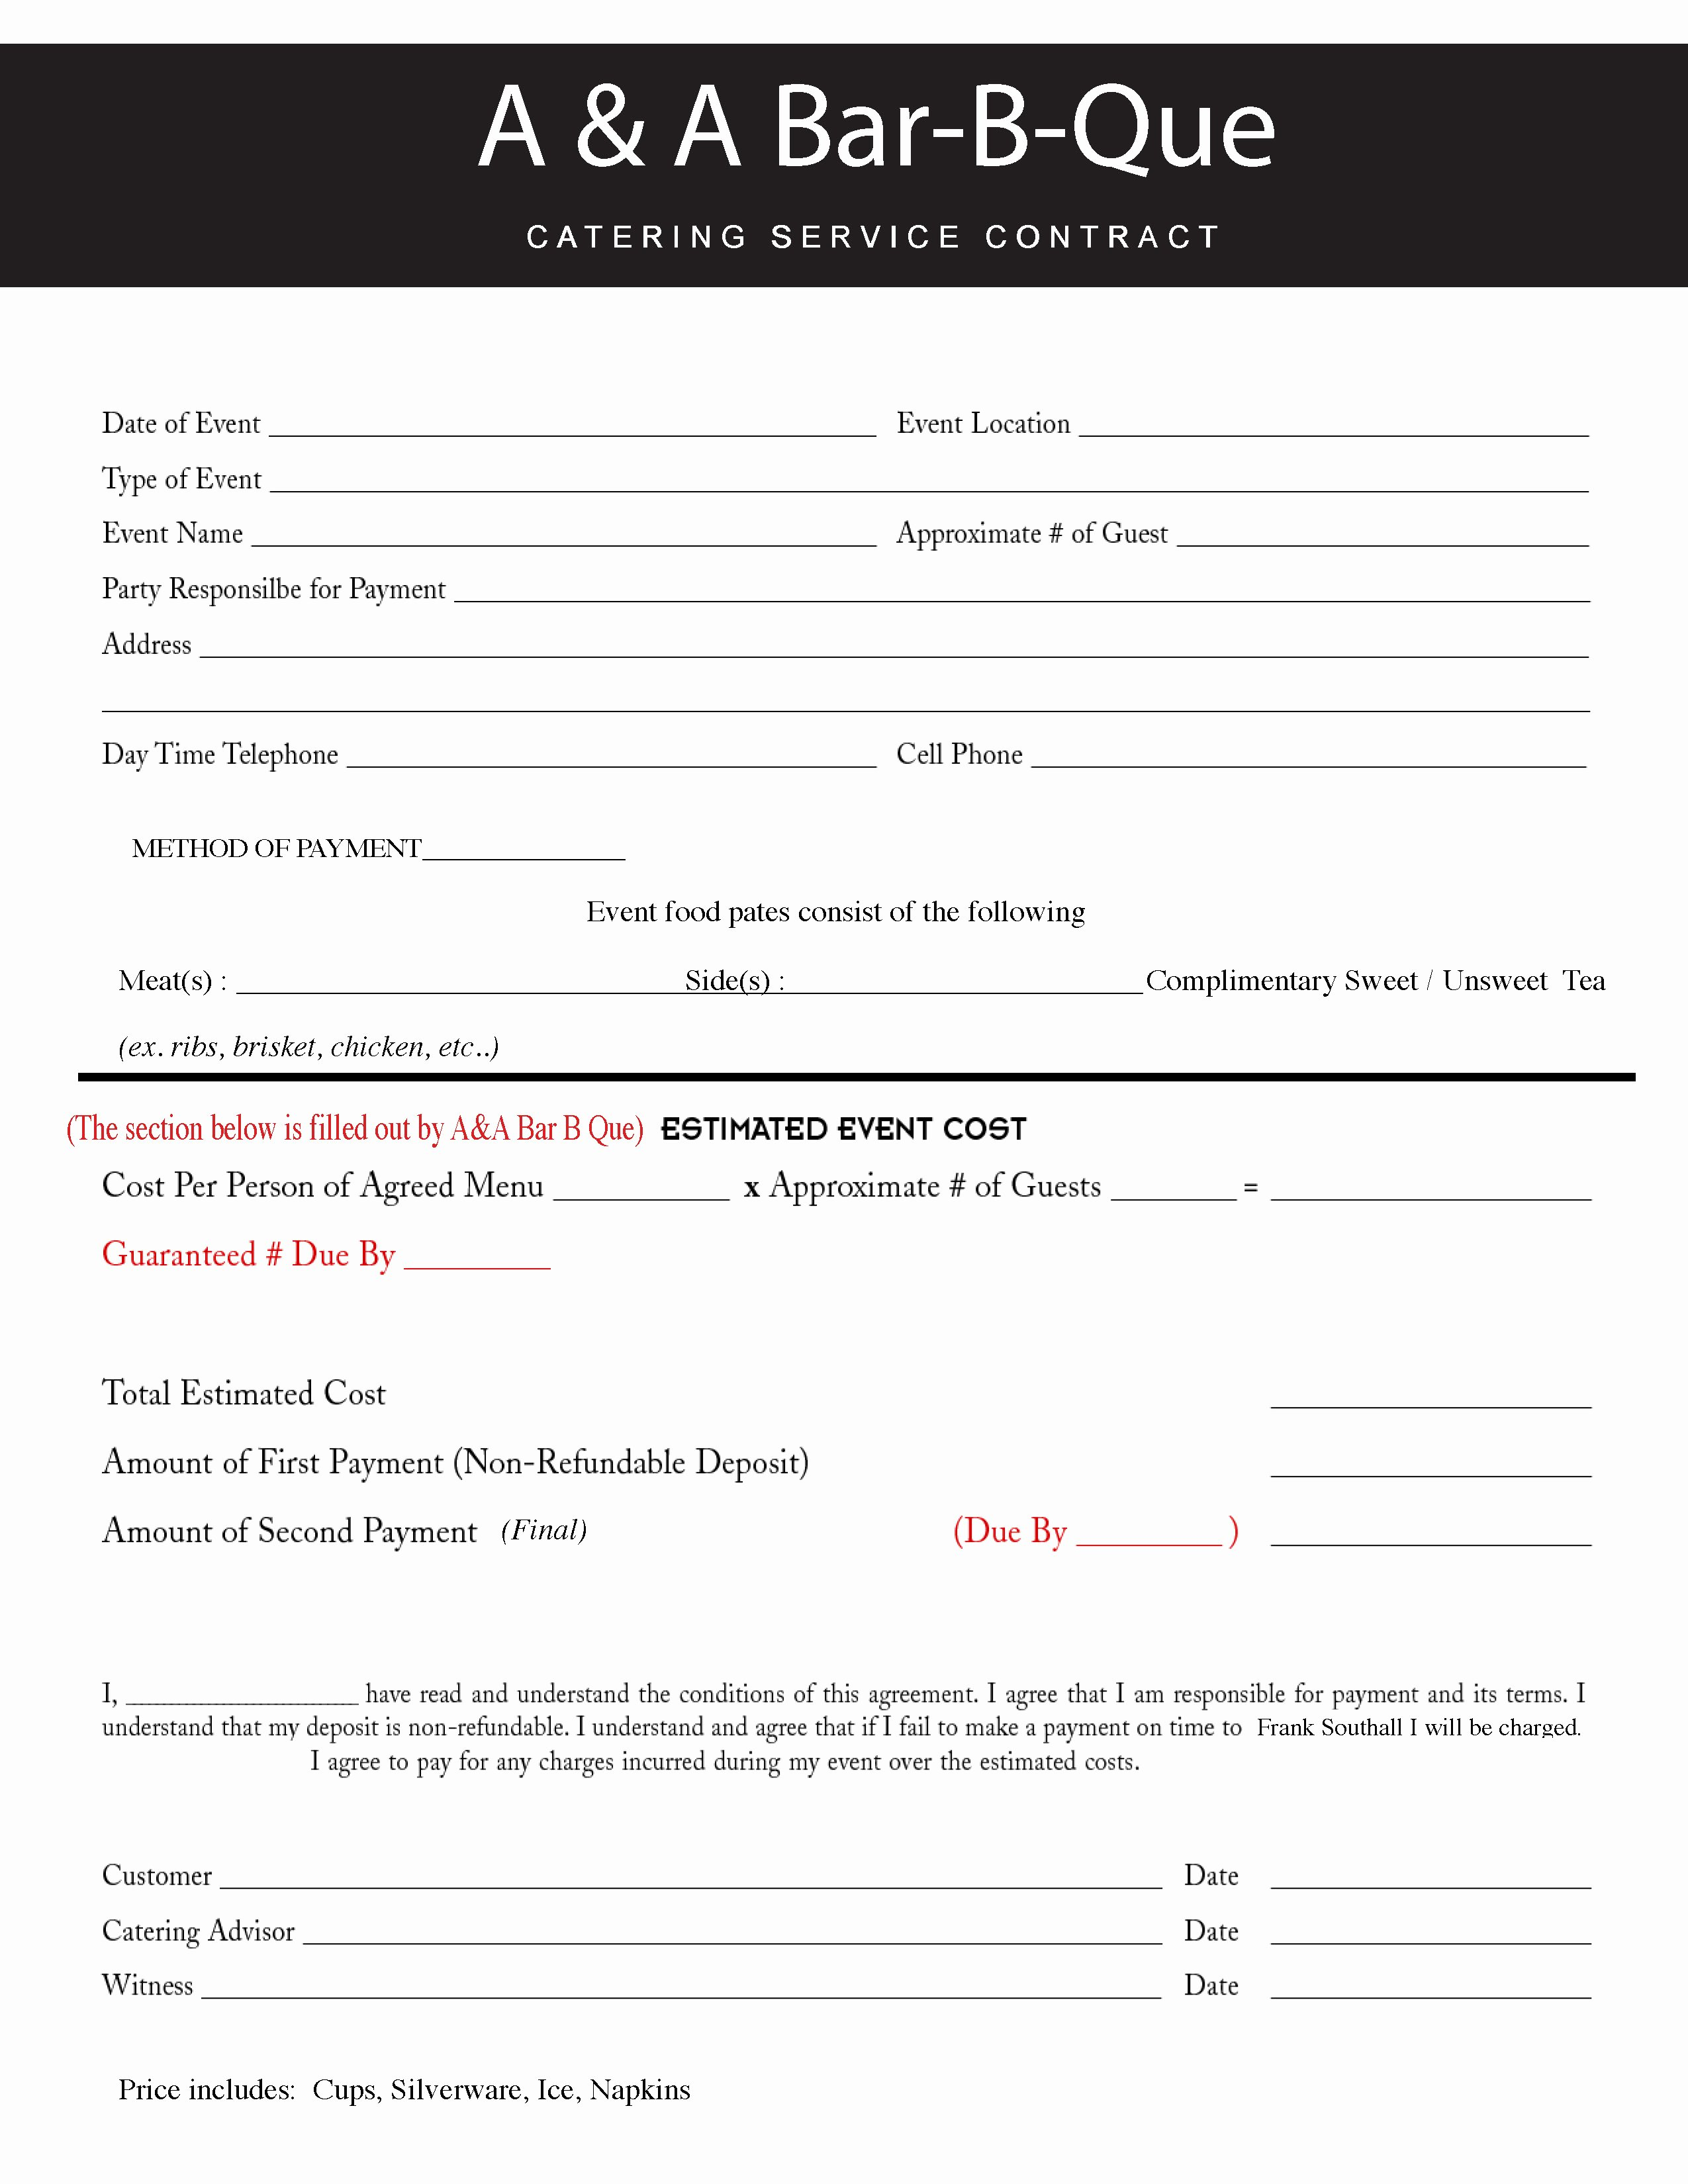 Contract for Catering Services Template Unique Contract Catering Contract Template